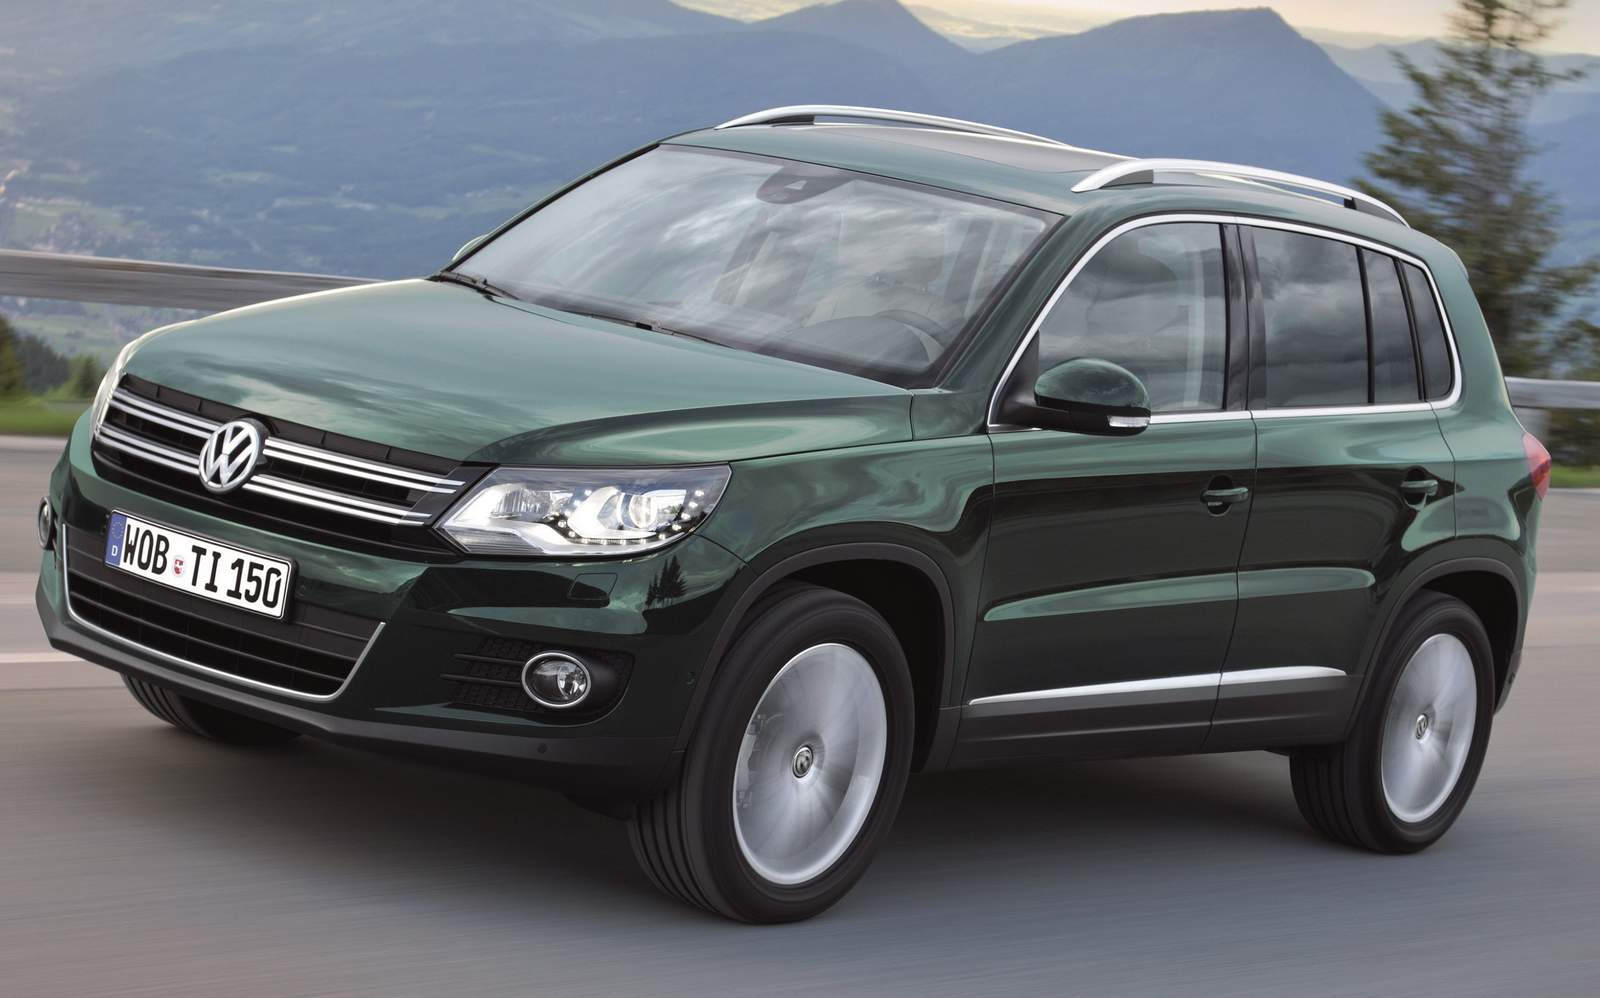 car blog br volkswagen tiguan 2016 recebe melhorias na europa. Black Bedroom Furniture Sets. Home Design Ideas